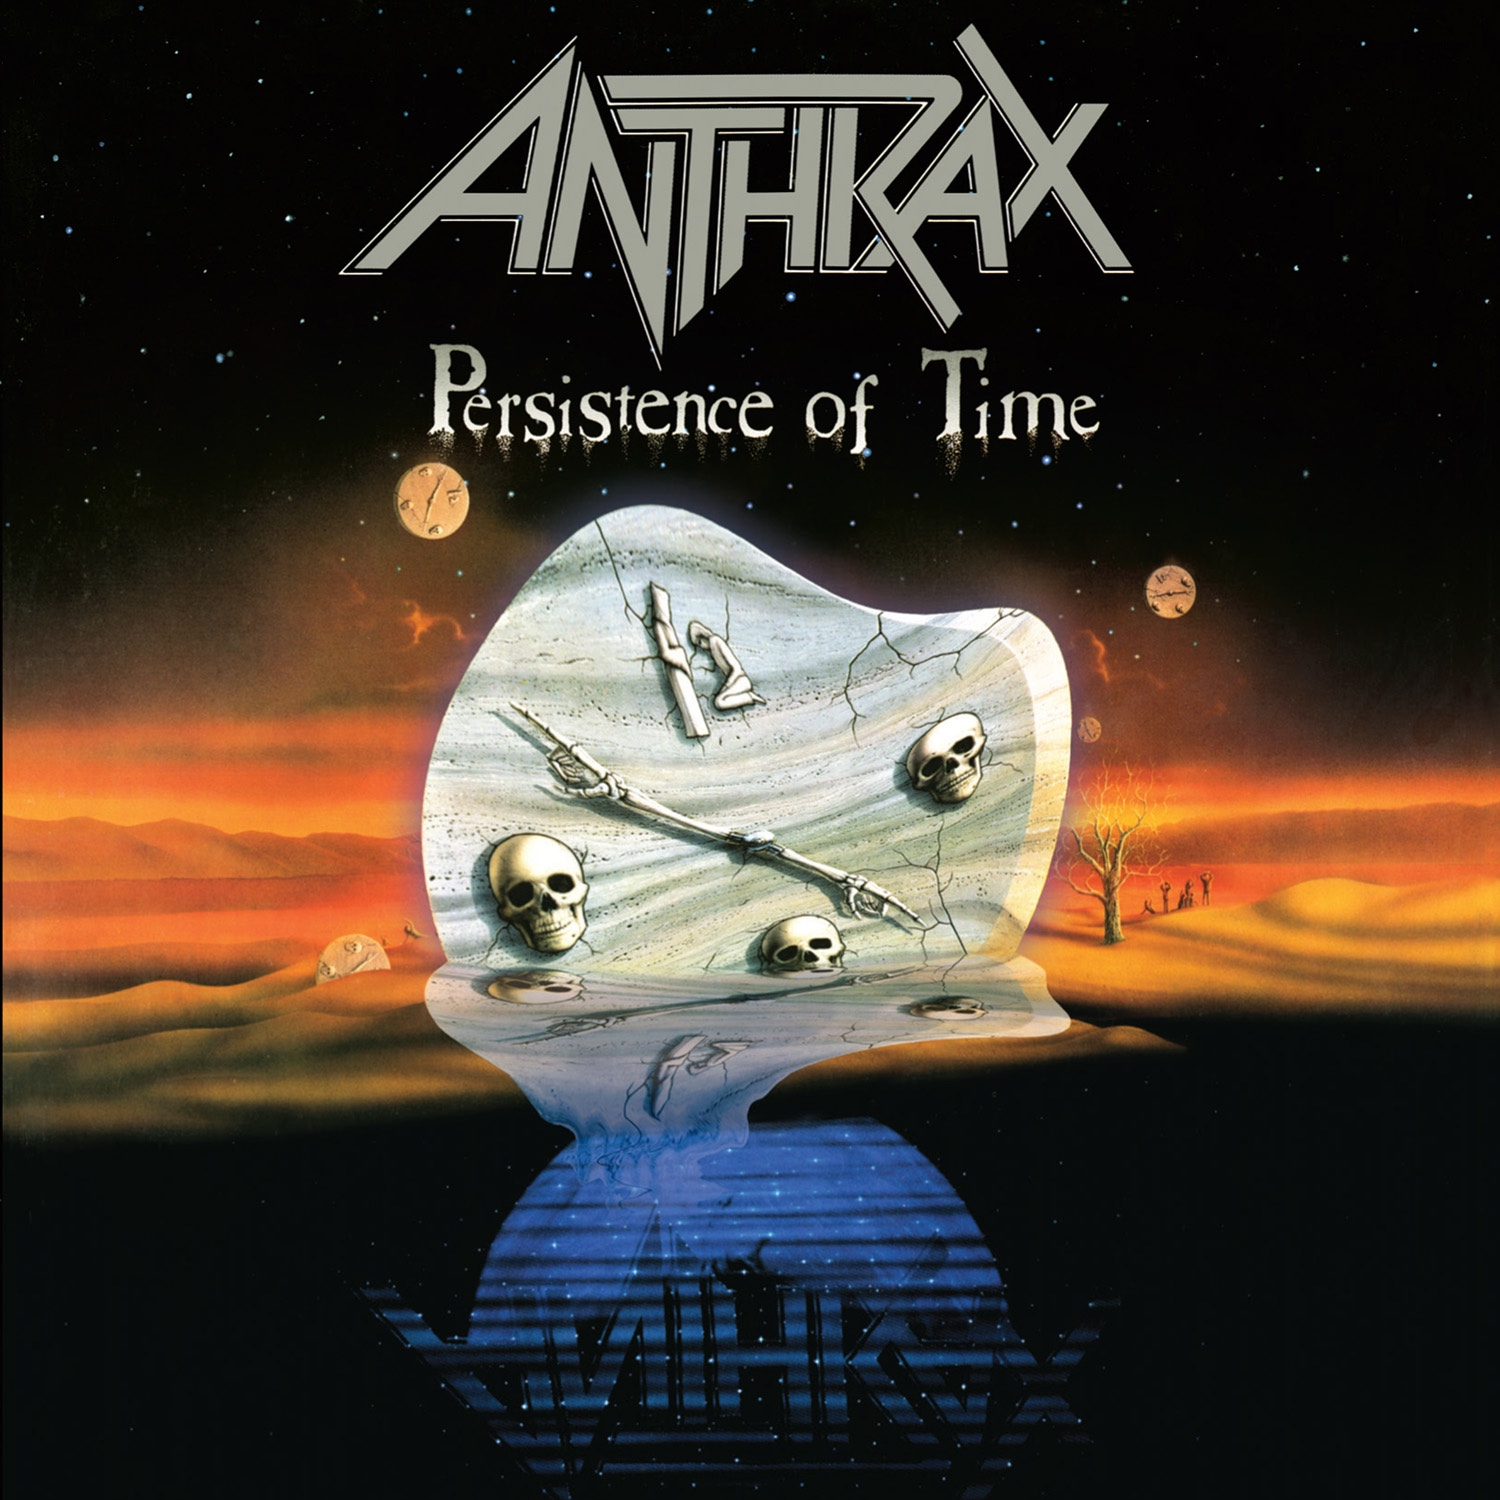 Anthrax - Persistence of Time - Deluxe